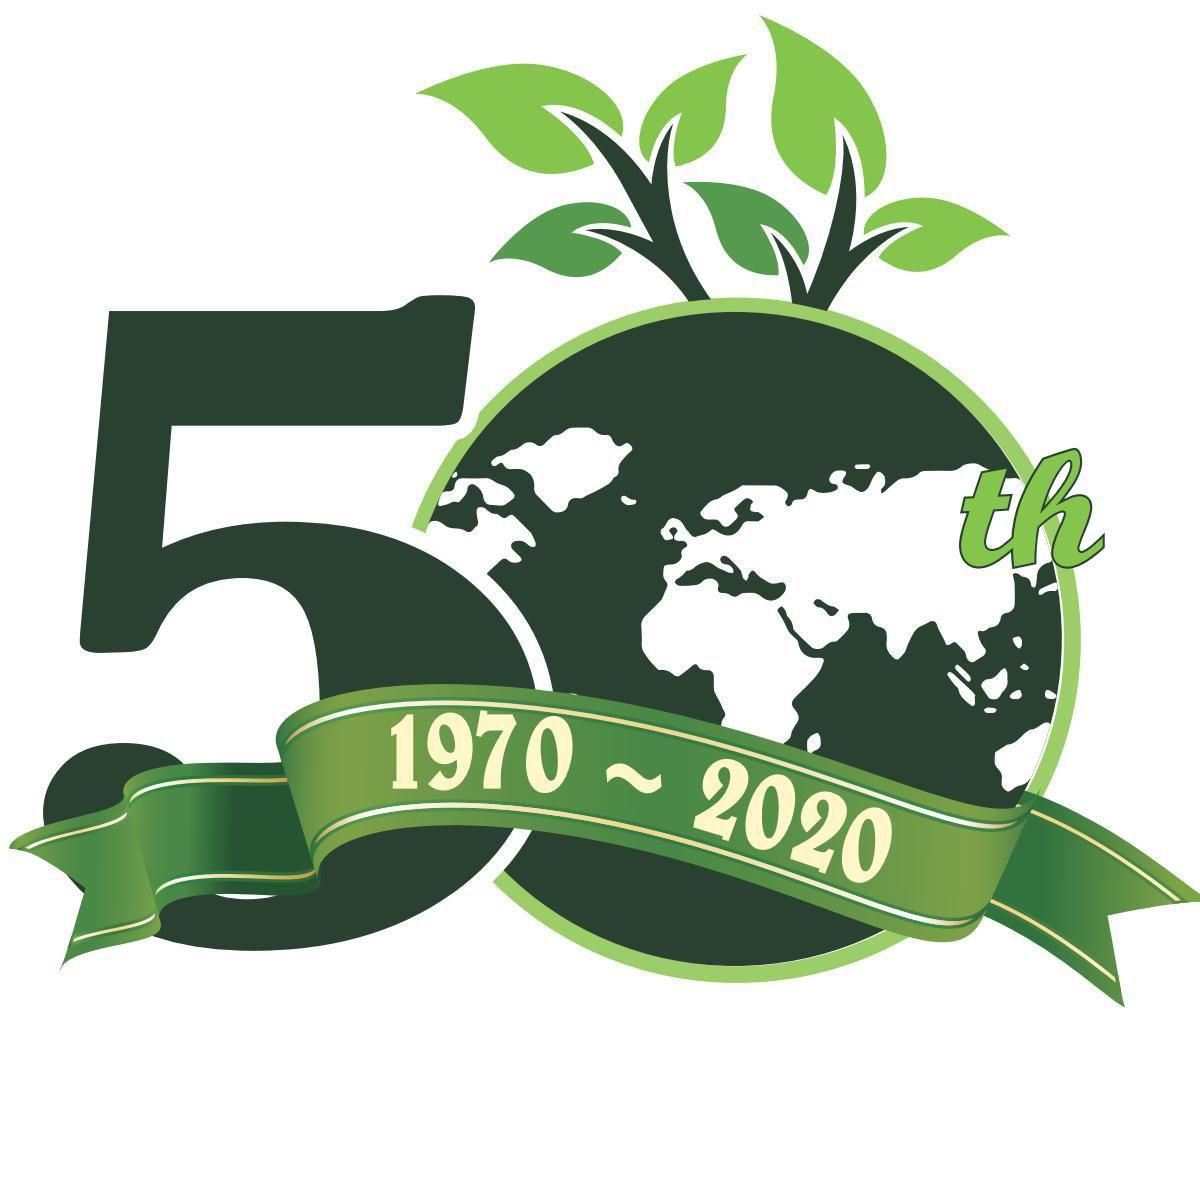 Earth Day: 50 years of a movement | Local | thetandd.com